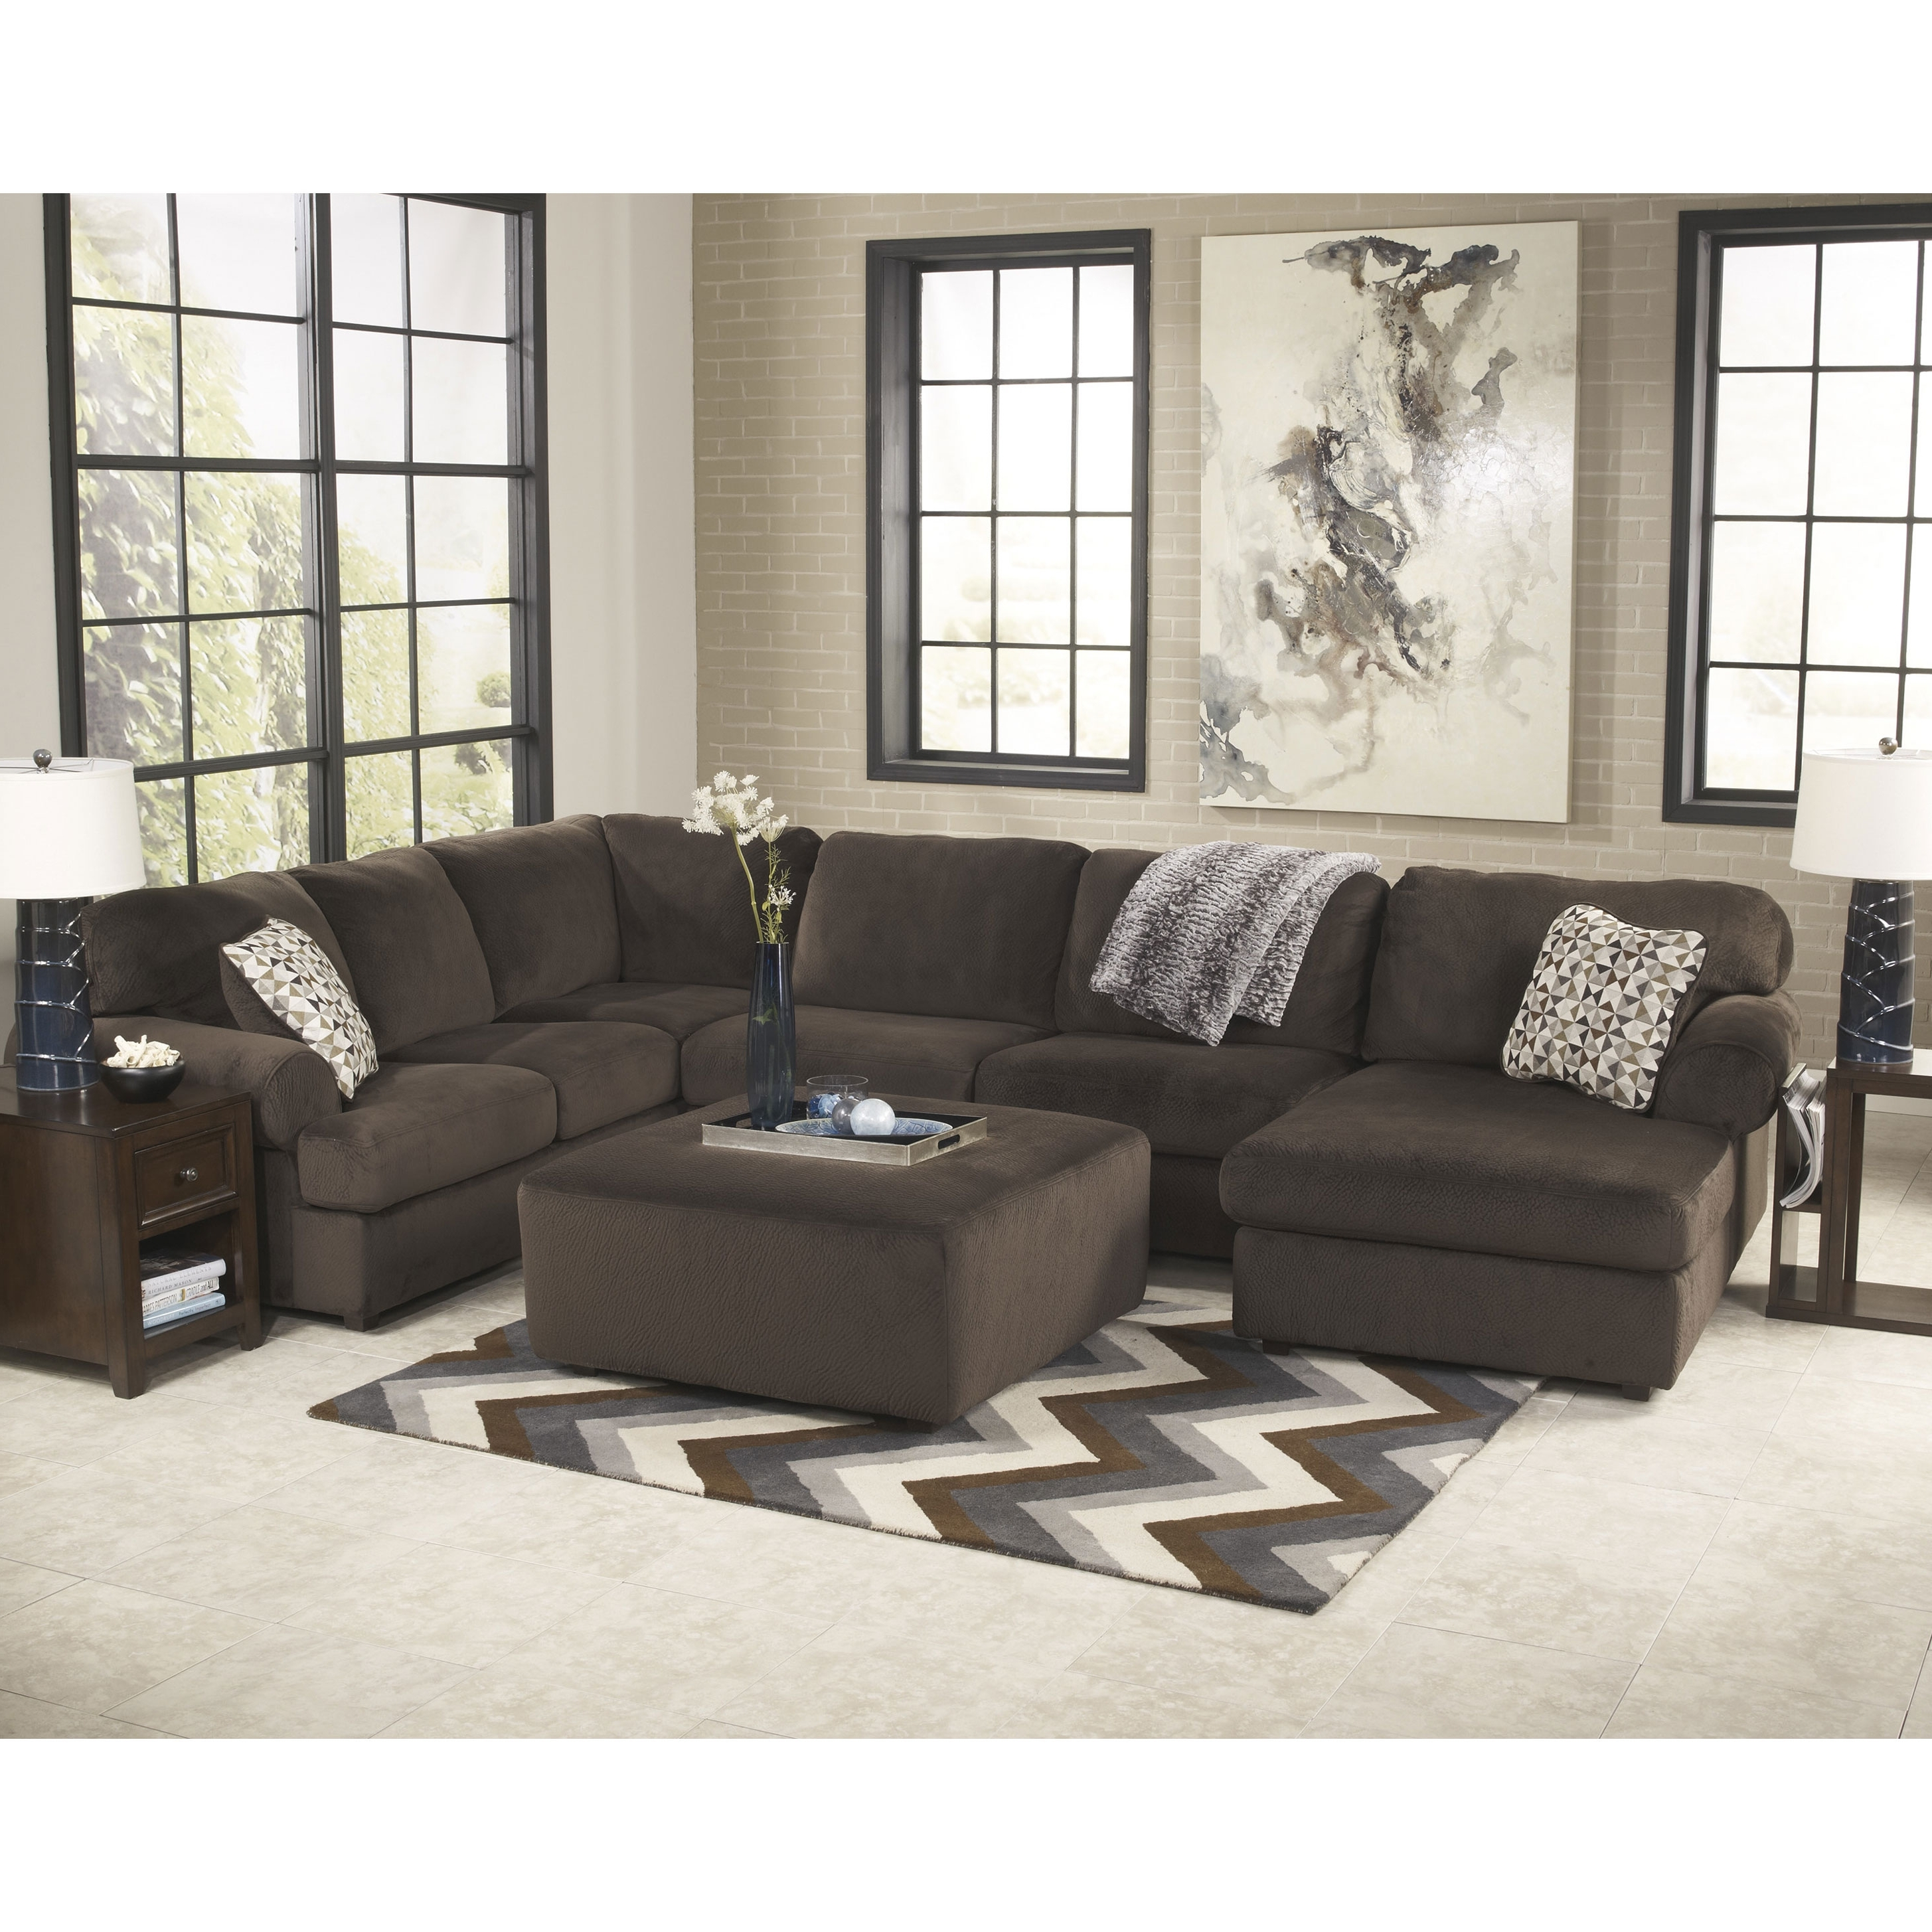 Kijiji London Sectional Sofas Pertaining To 2018 Sectional Sofa: Top Recommended Faux Suede Sectional Sofa Gallery (View 9 of 20)